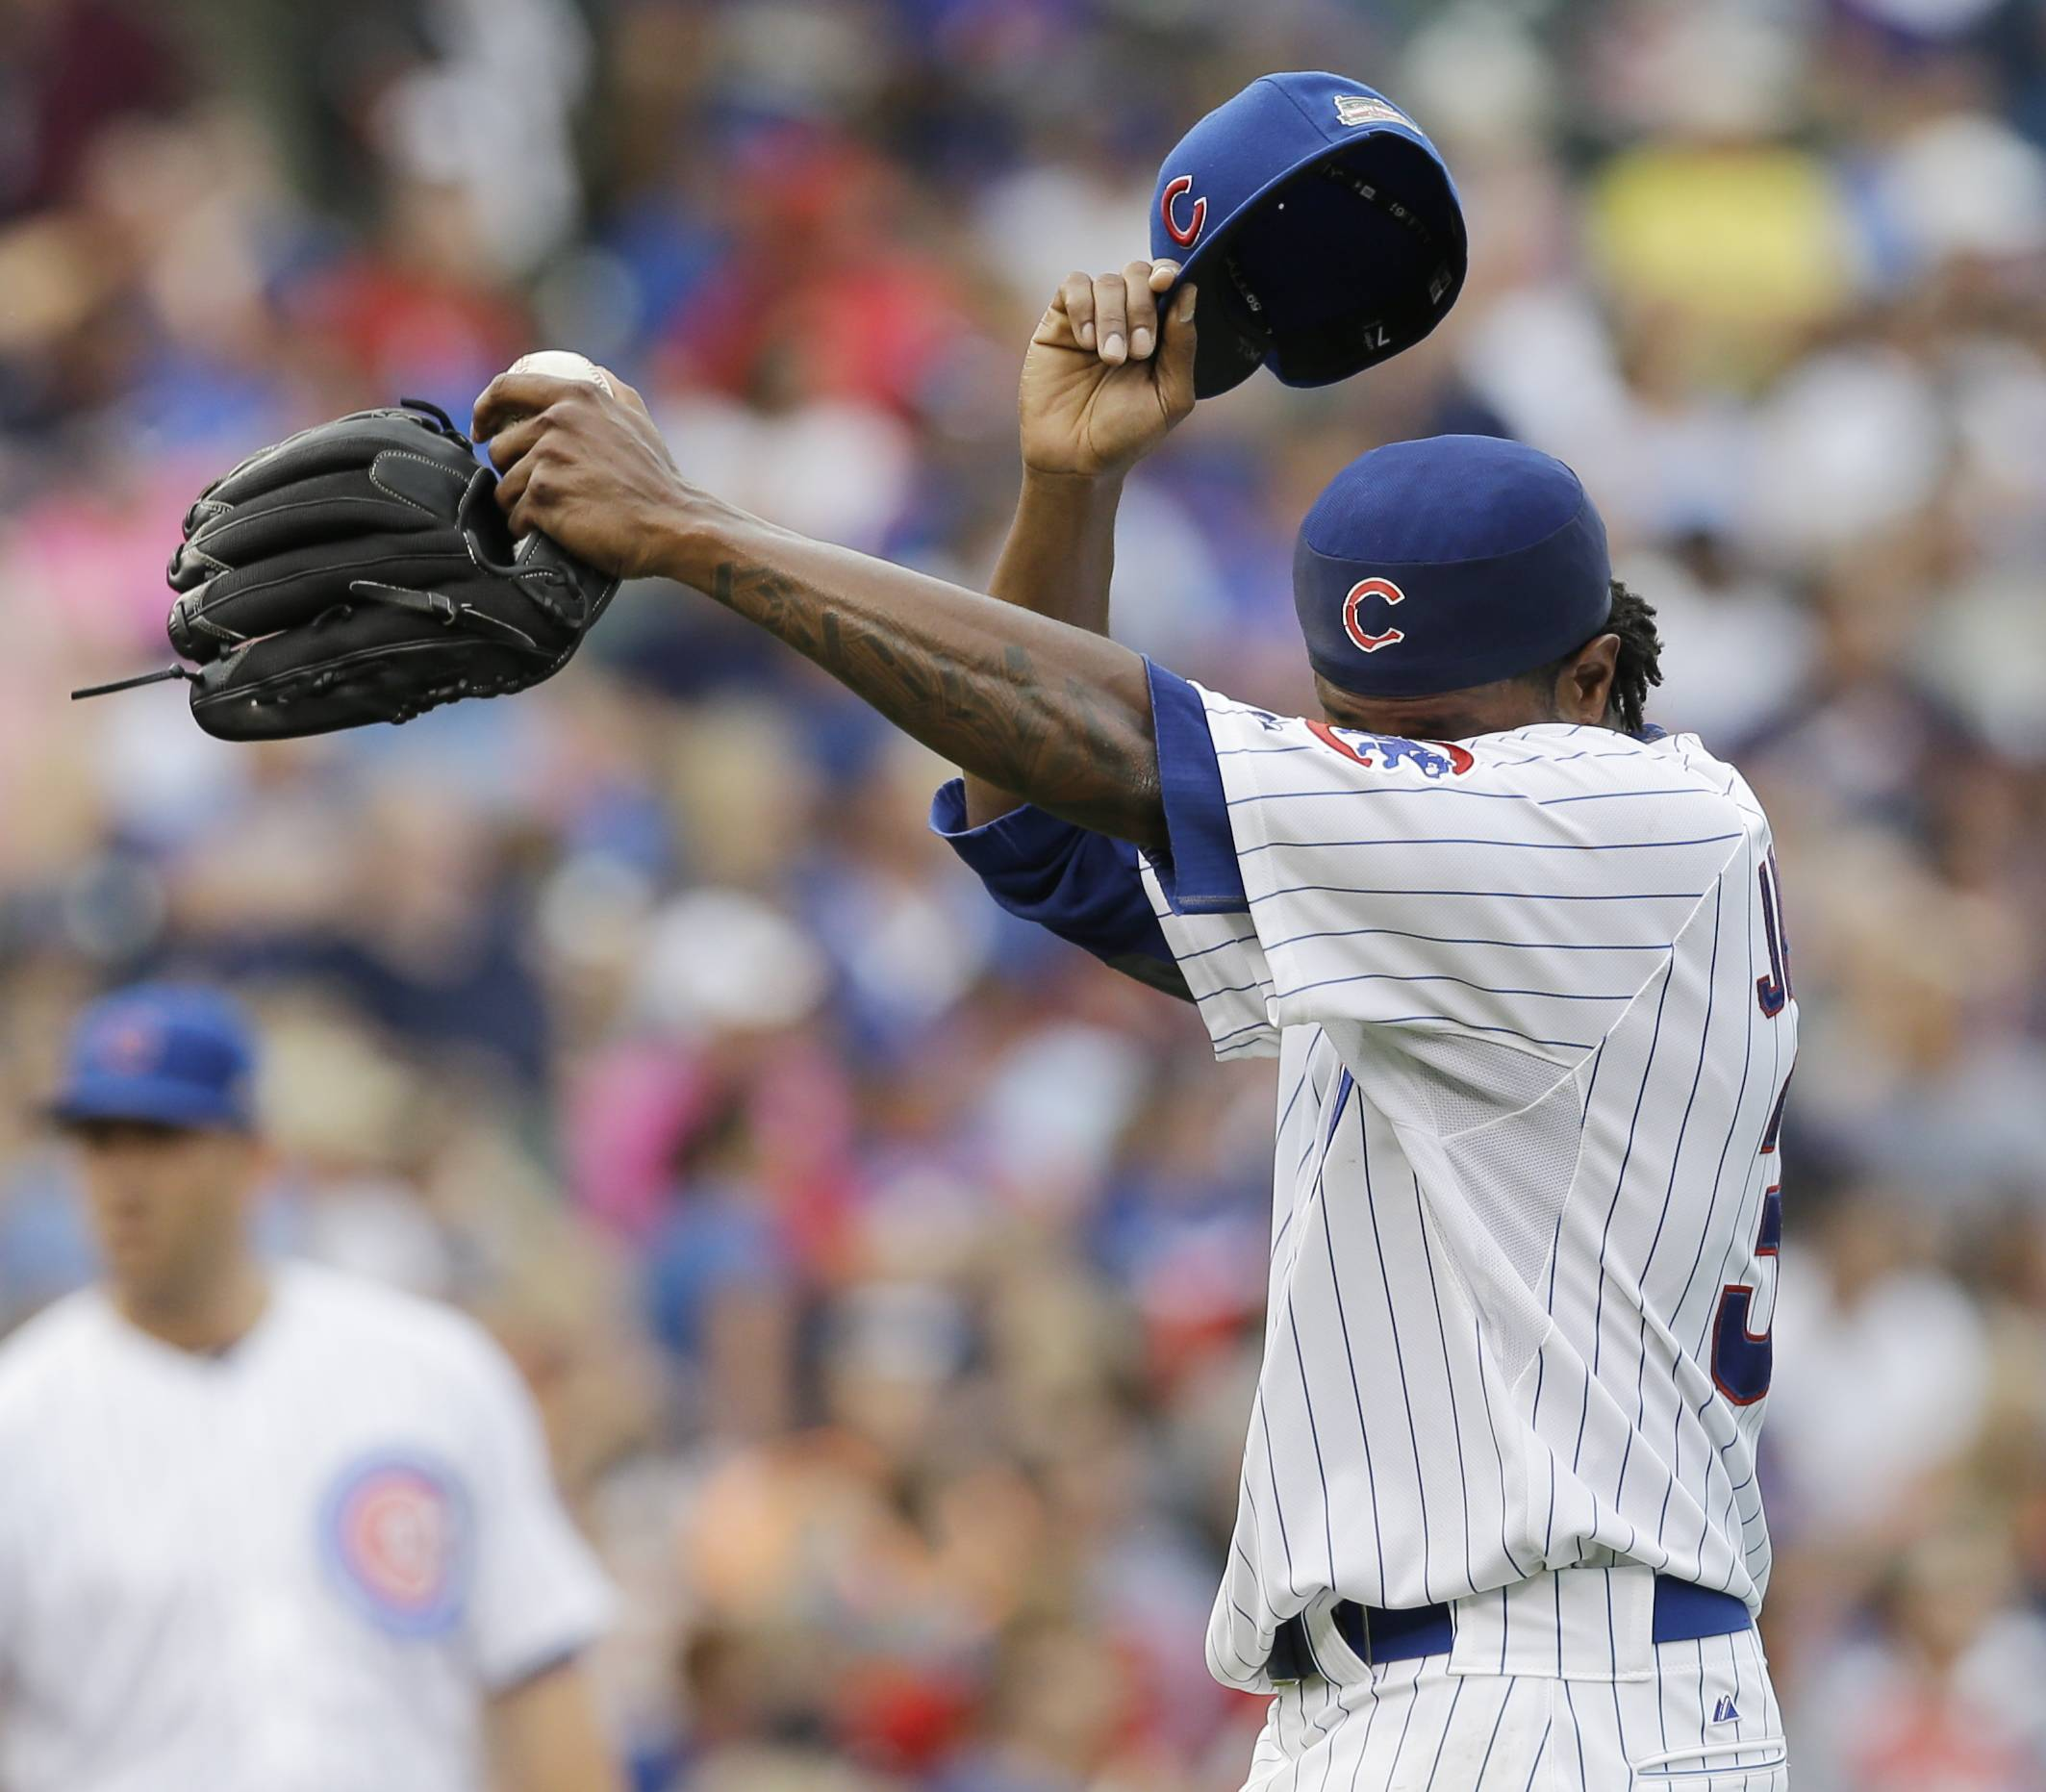 Cubs starter Edwin Jackson didn't make it out of the fourth inning on Saturday against the Braves.